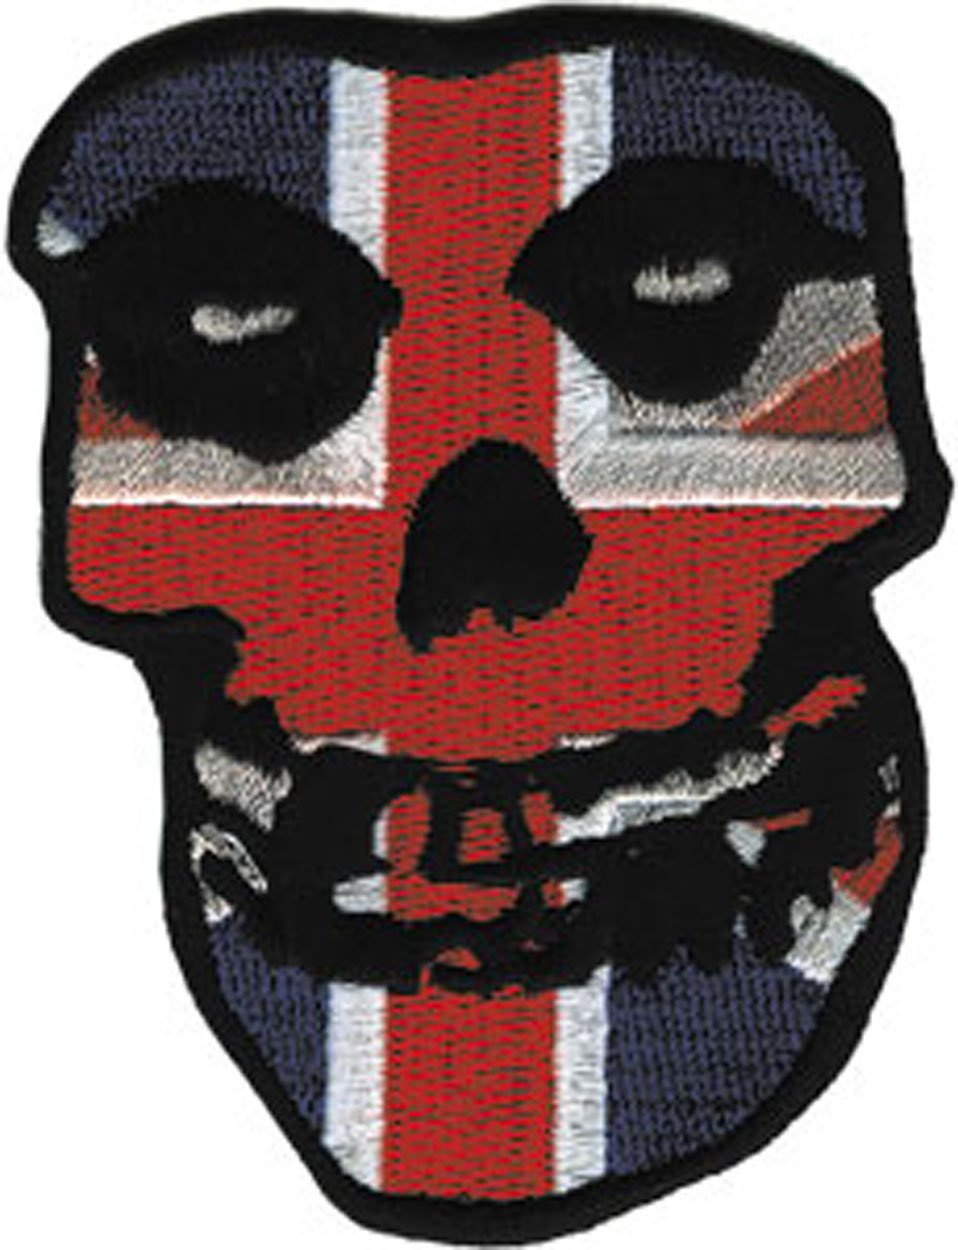 3 x 2.5 Embroidered Bestickt Patch Flicken Iron-On // Sew-On Officially Licensed Products Classic Rock Artwork MISFITS Application British Skull Patch Flicken